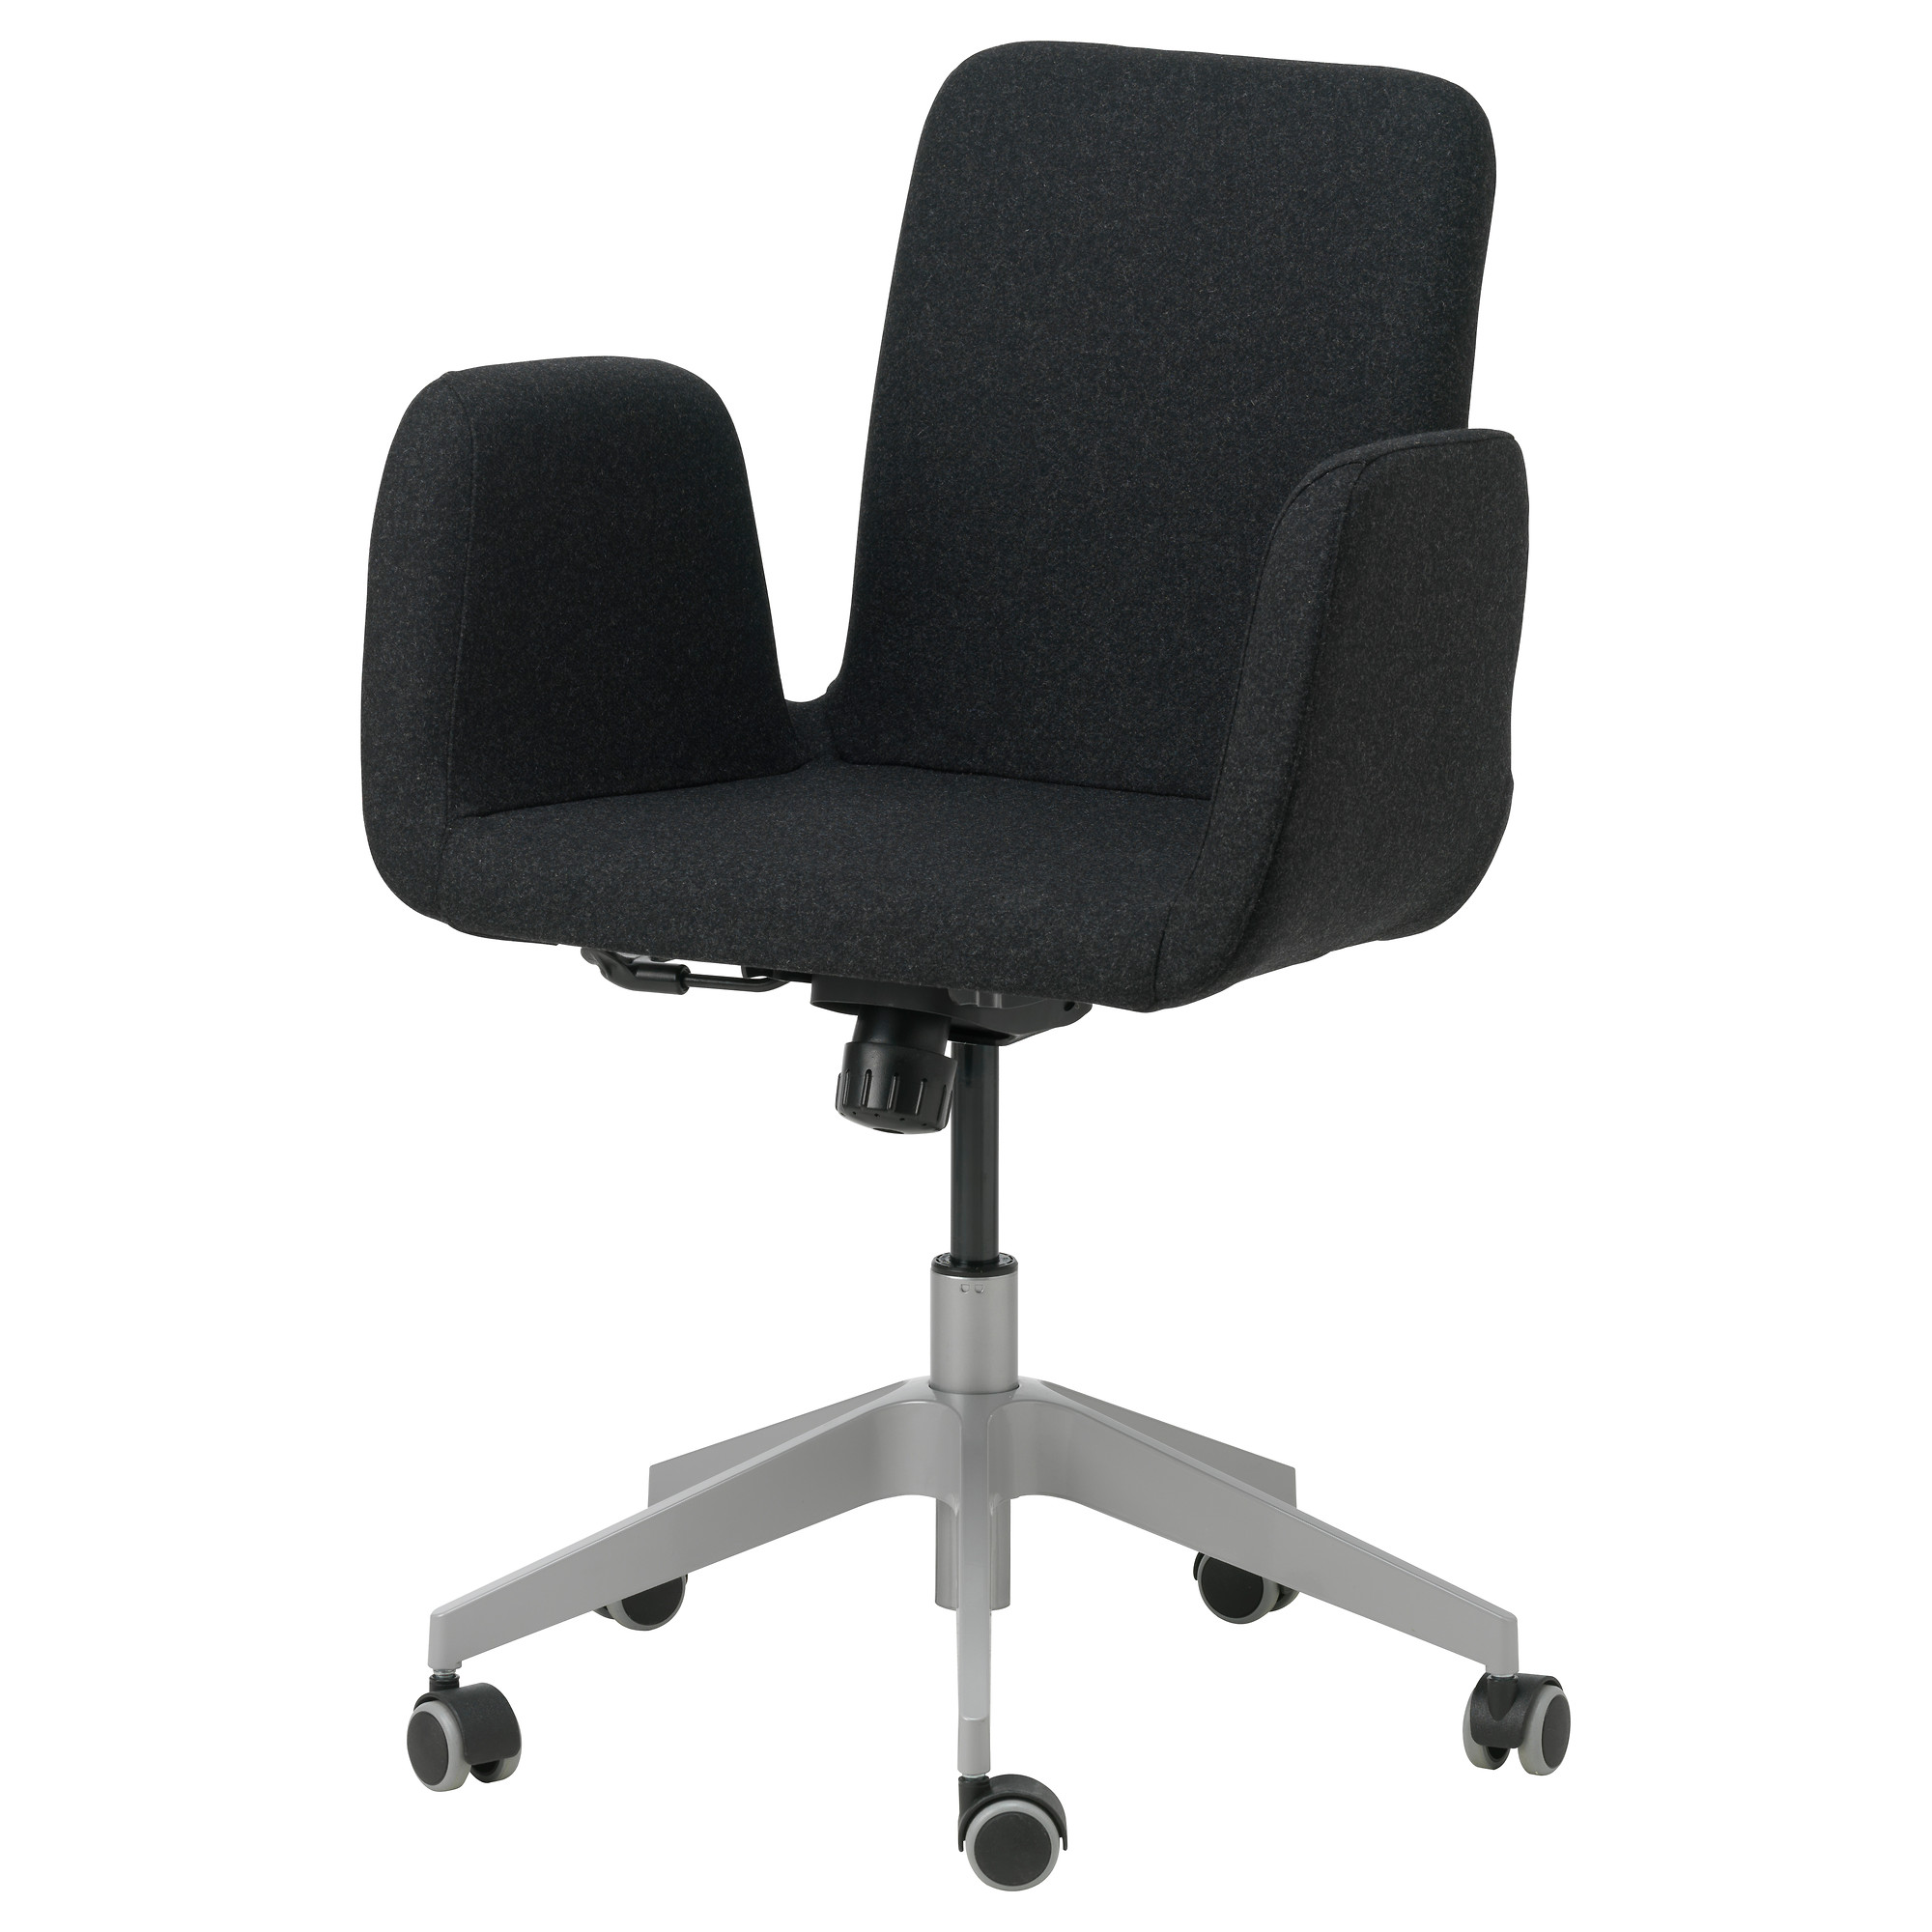 office executive furnishers back reviews golden free chair get product chairs new buy medium